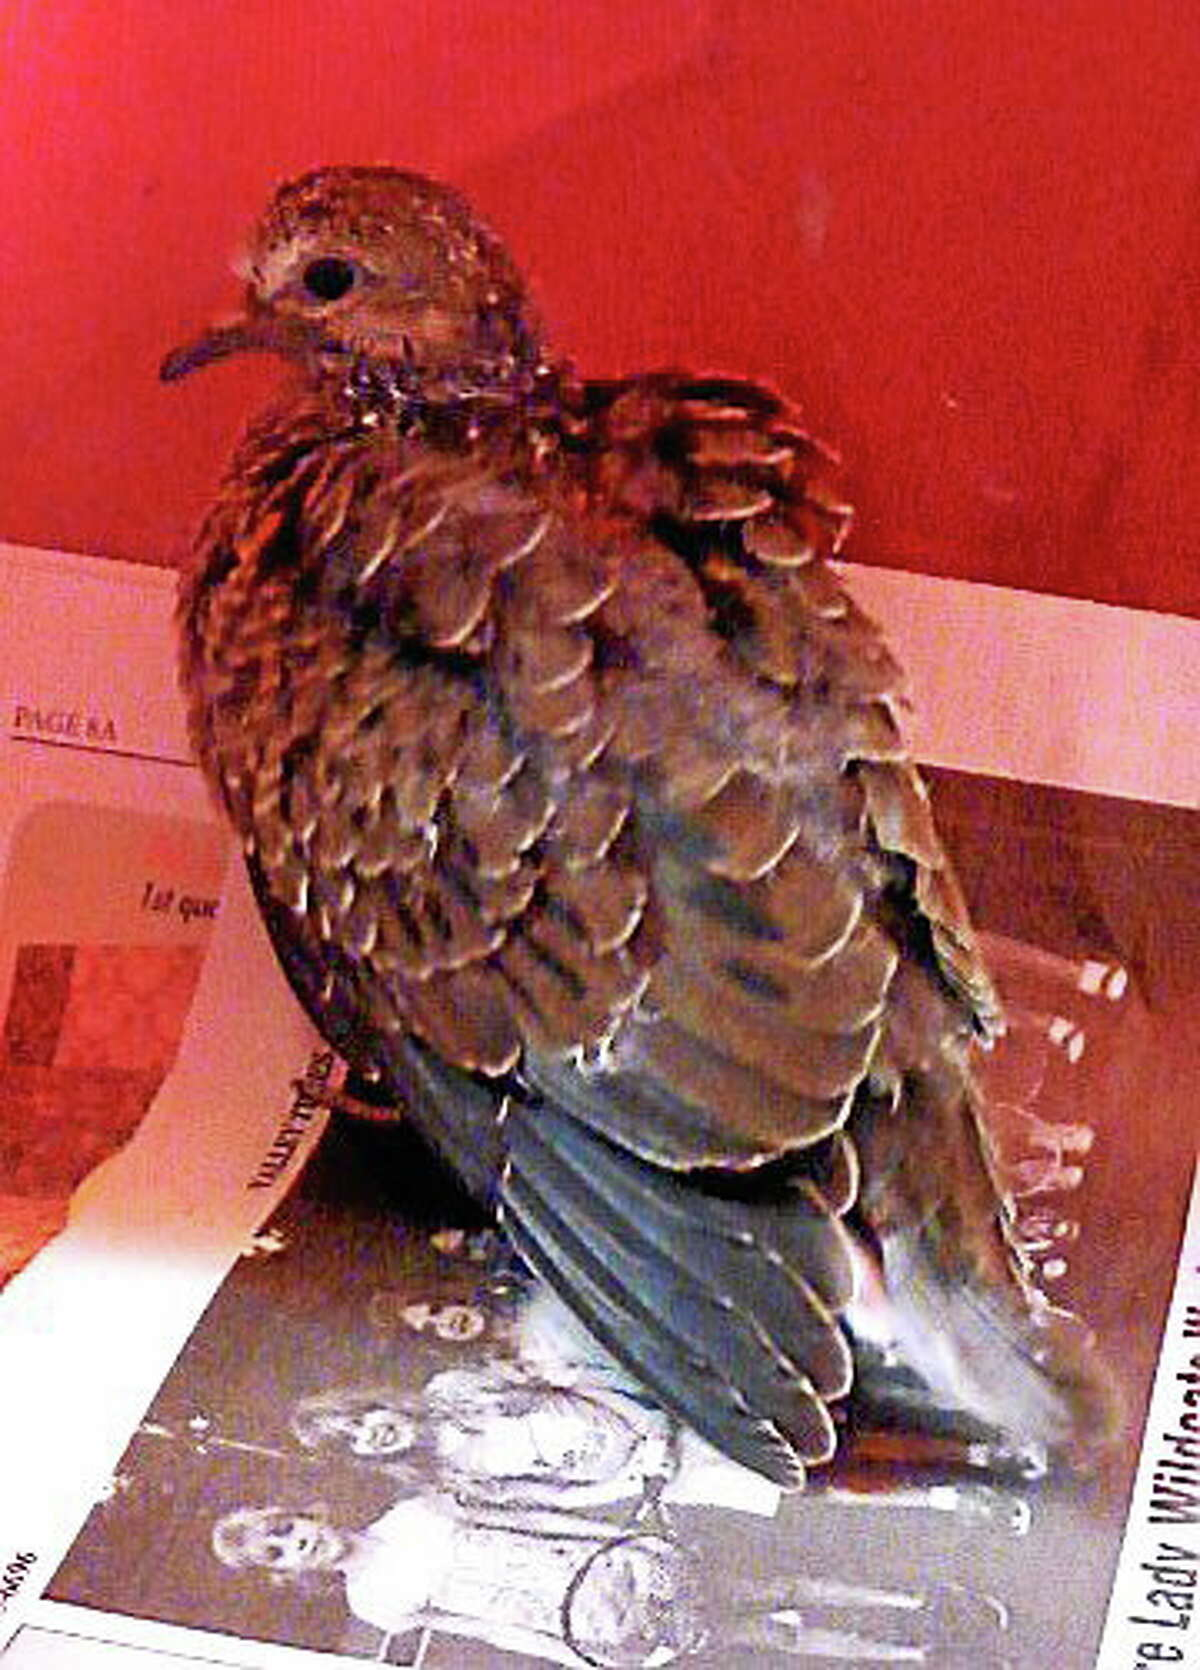 Mourning dove rescuted from Derby parking garage. (Patrica Villers ó New Haven Register)